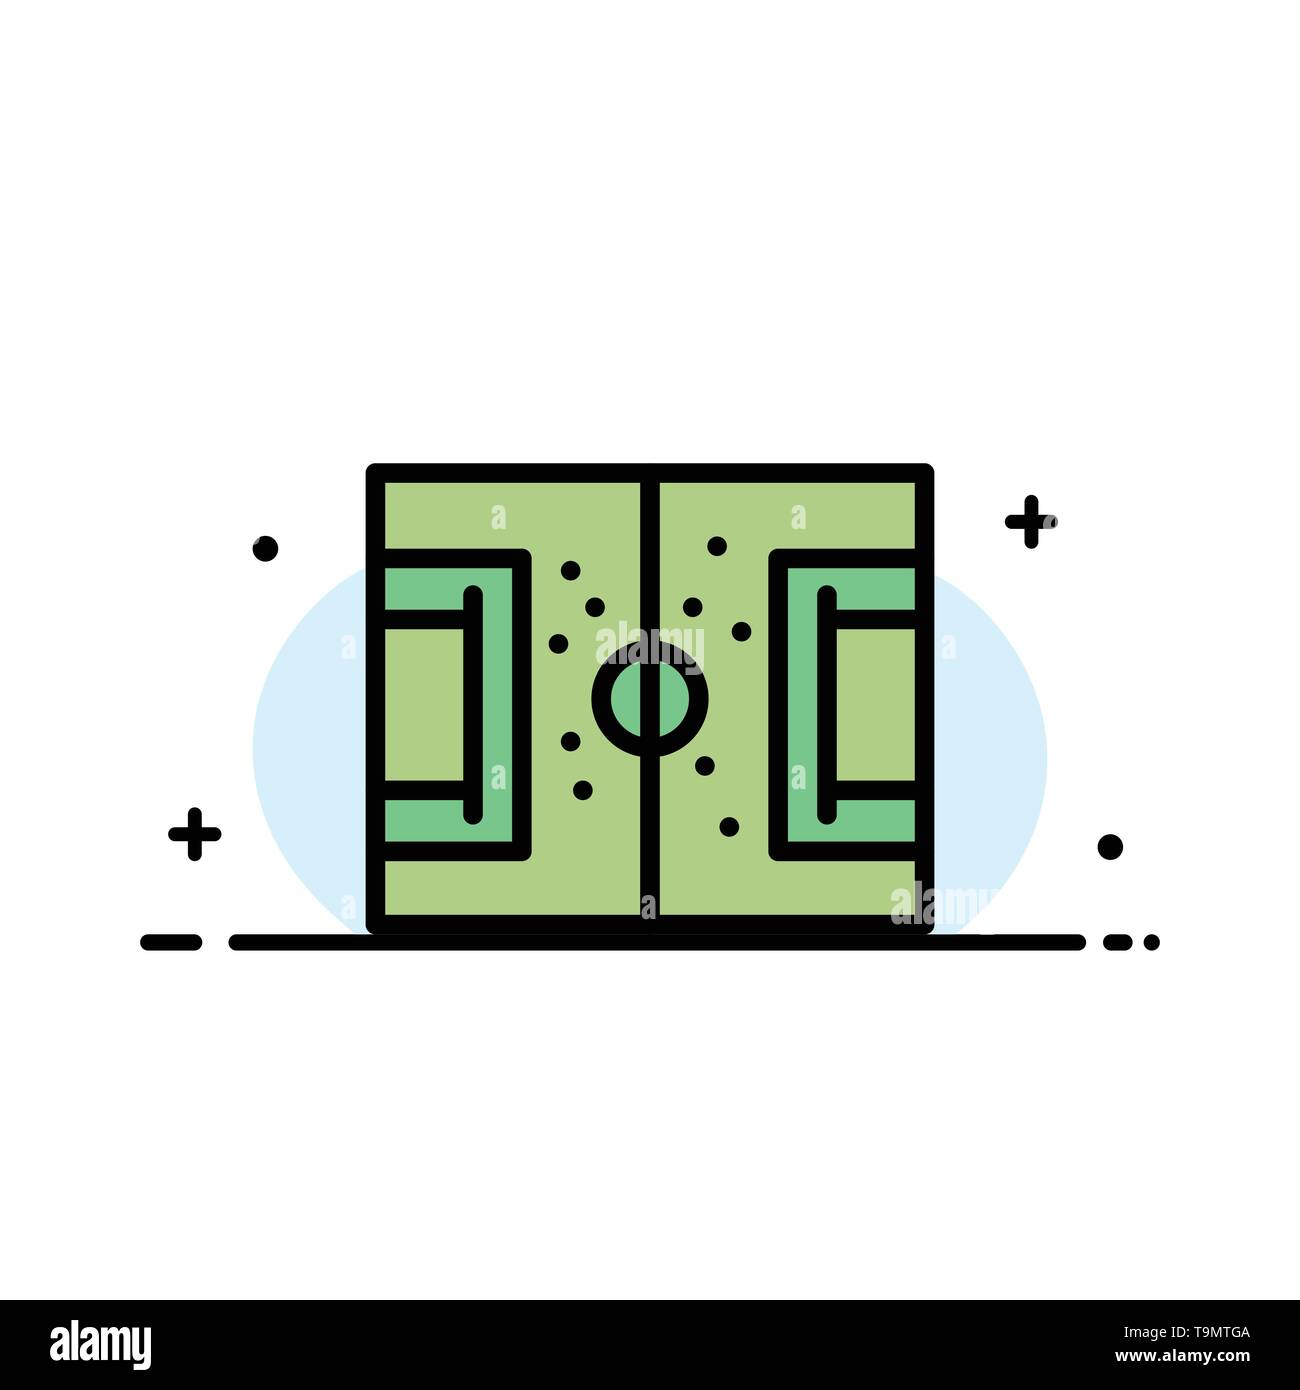 Field, Football, Game, Pitch, Soccer  Business Flat Line Filled Icon Vector Banner Template - Stock Image